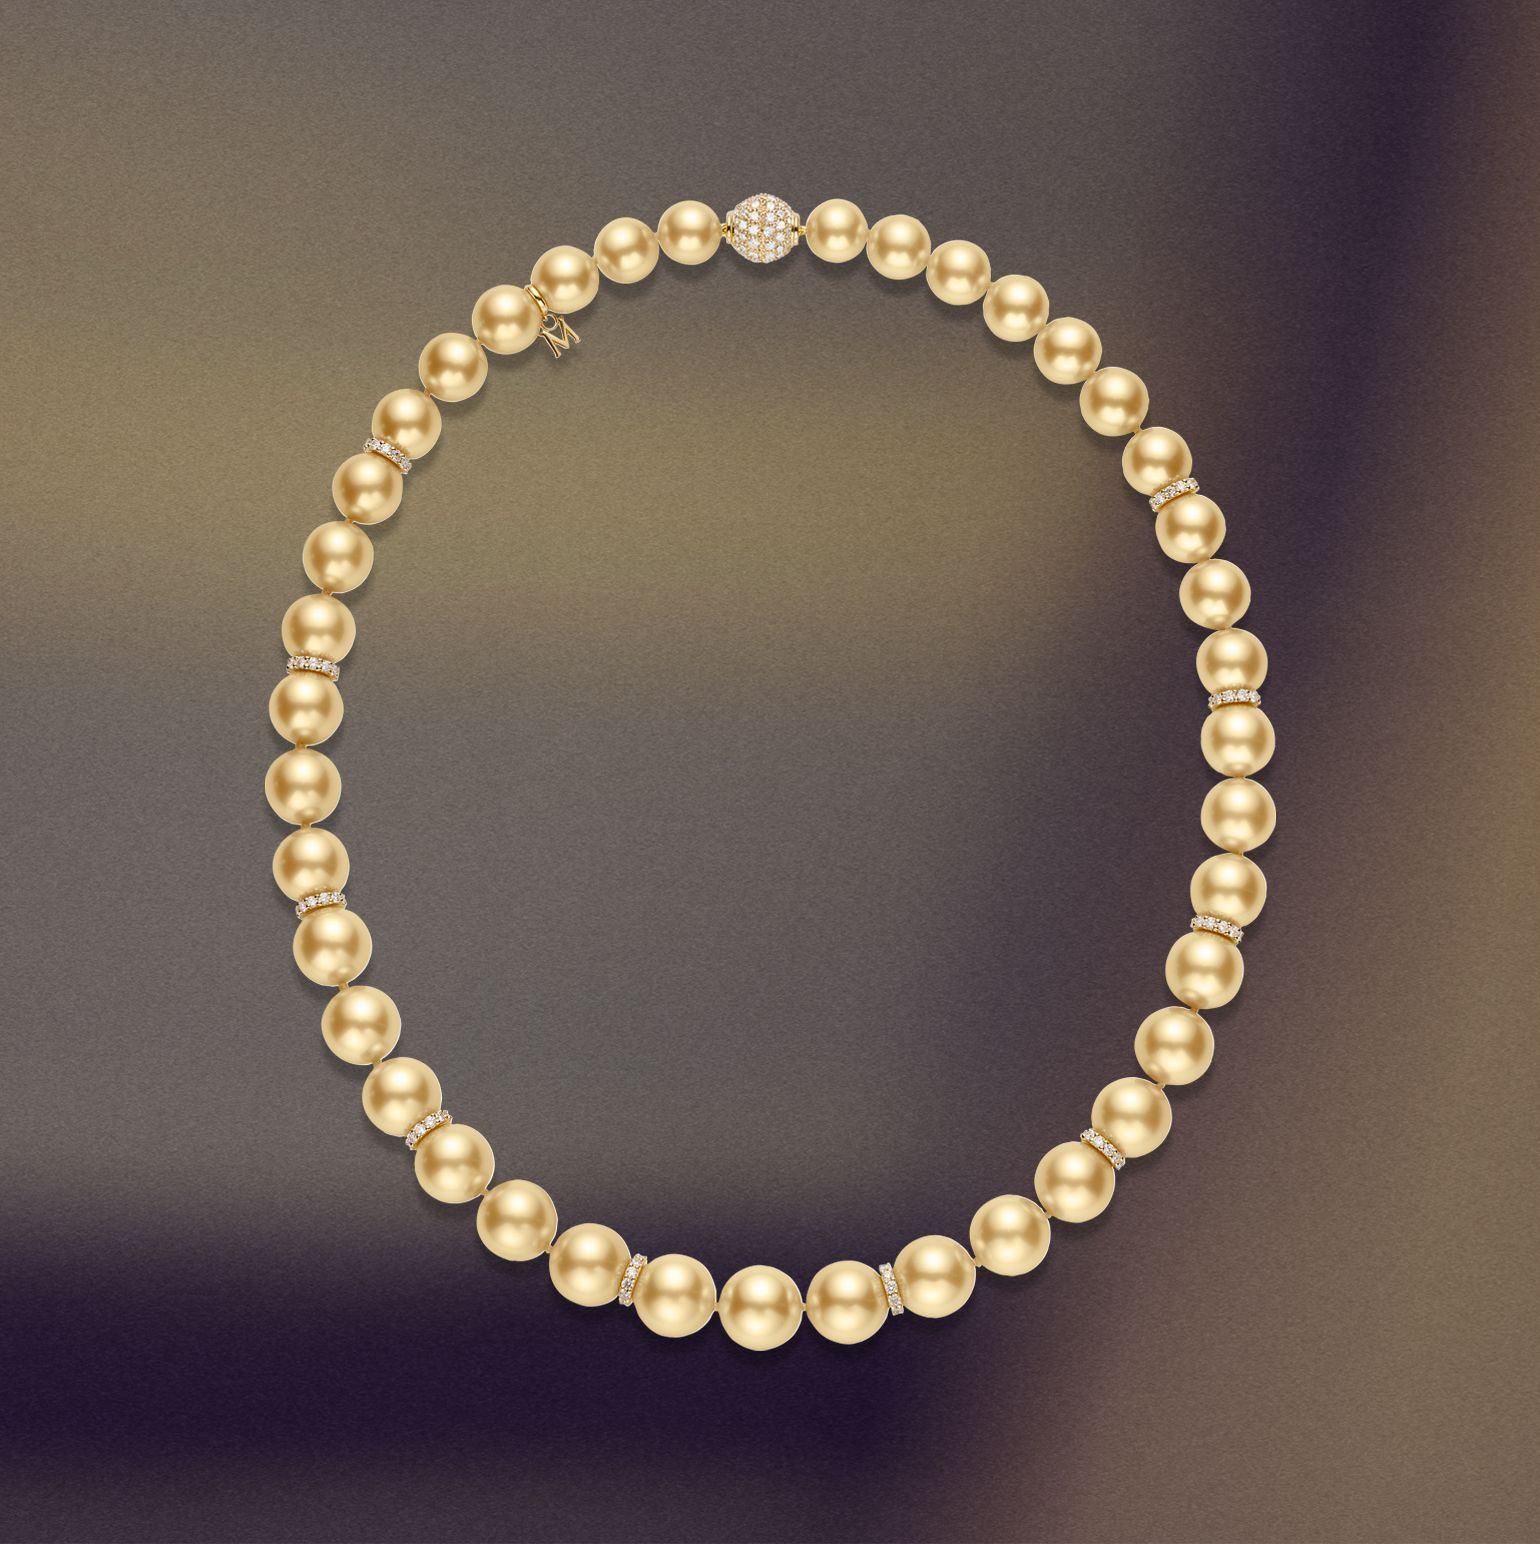 Strung To Perfection With Fine Silk, Mikimoto Golden South Sea Pearls